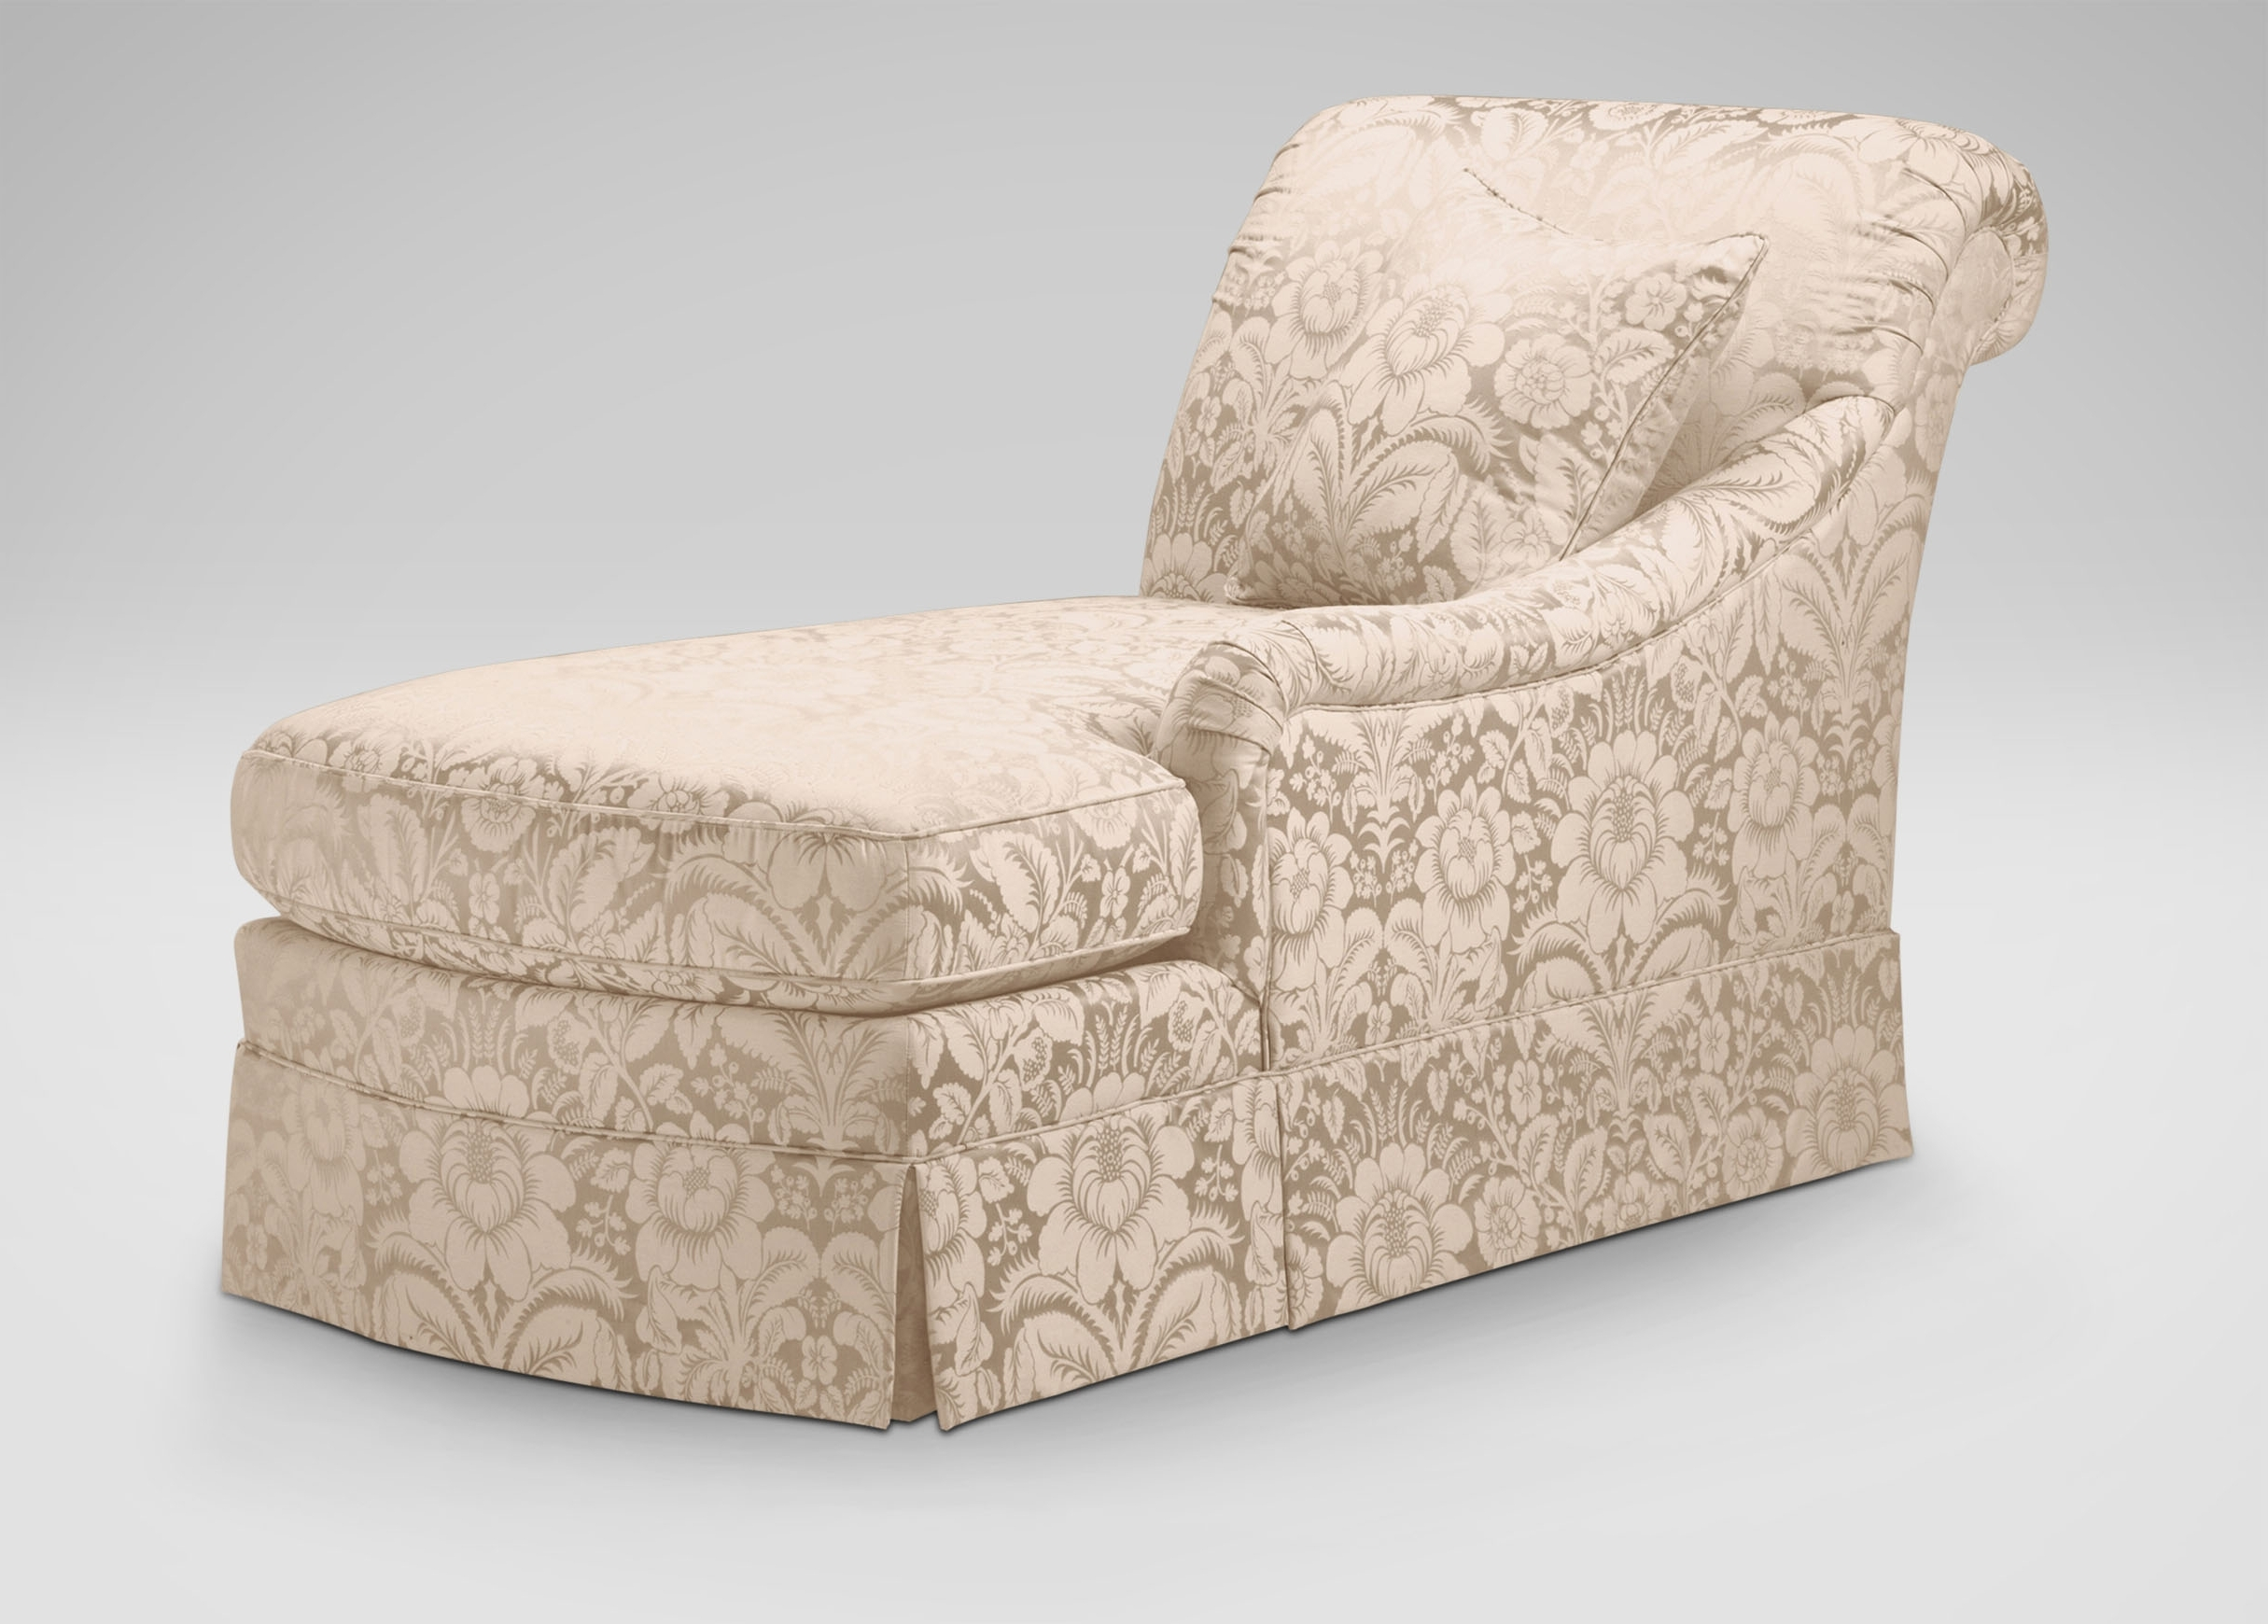 Chaise Lounge Slipcovers – Slipcovers For Chaise Lounge Chairs Throughout Well Liked Indoor Chaise Lounge Covers (View 11 of 15)